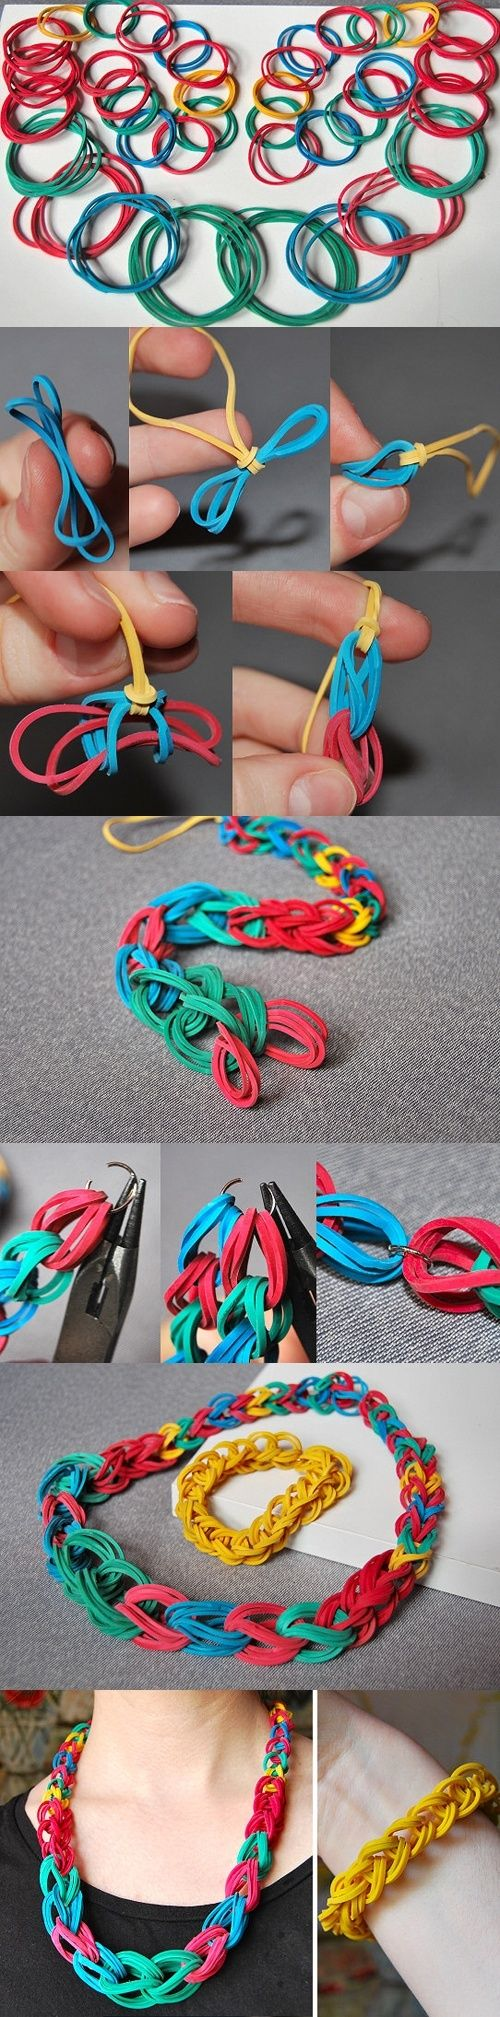 Elastic band jewellery, could also do it with those really skinny rubber bangles.